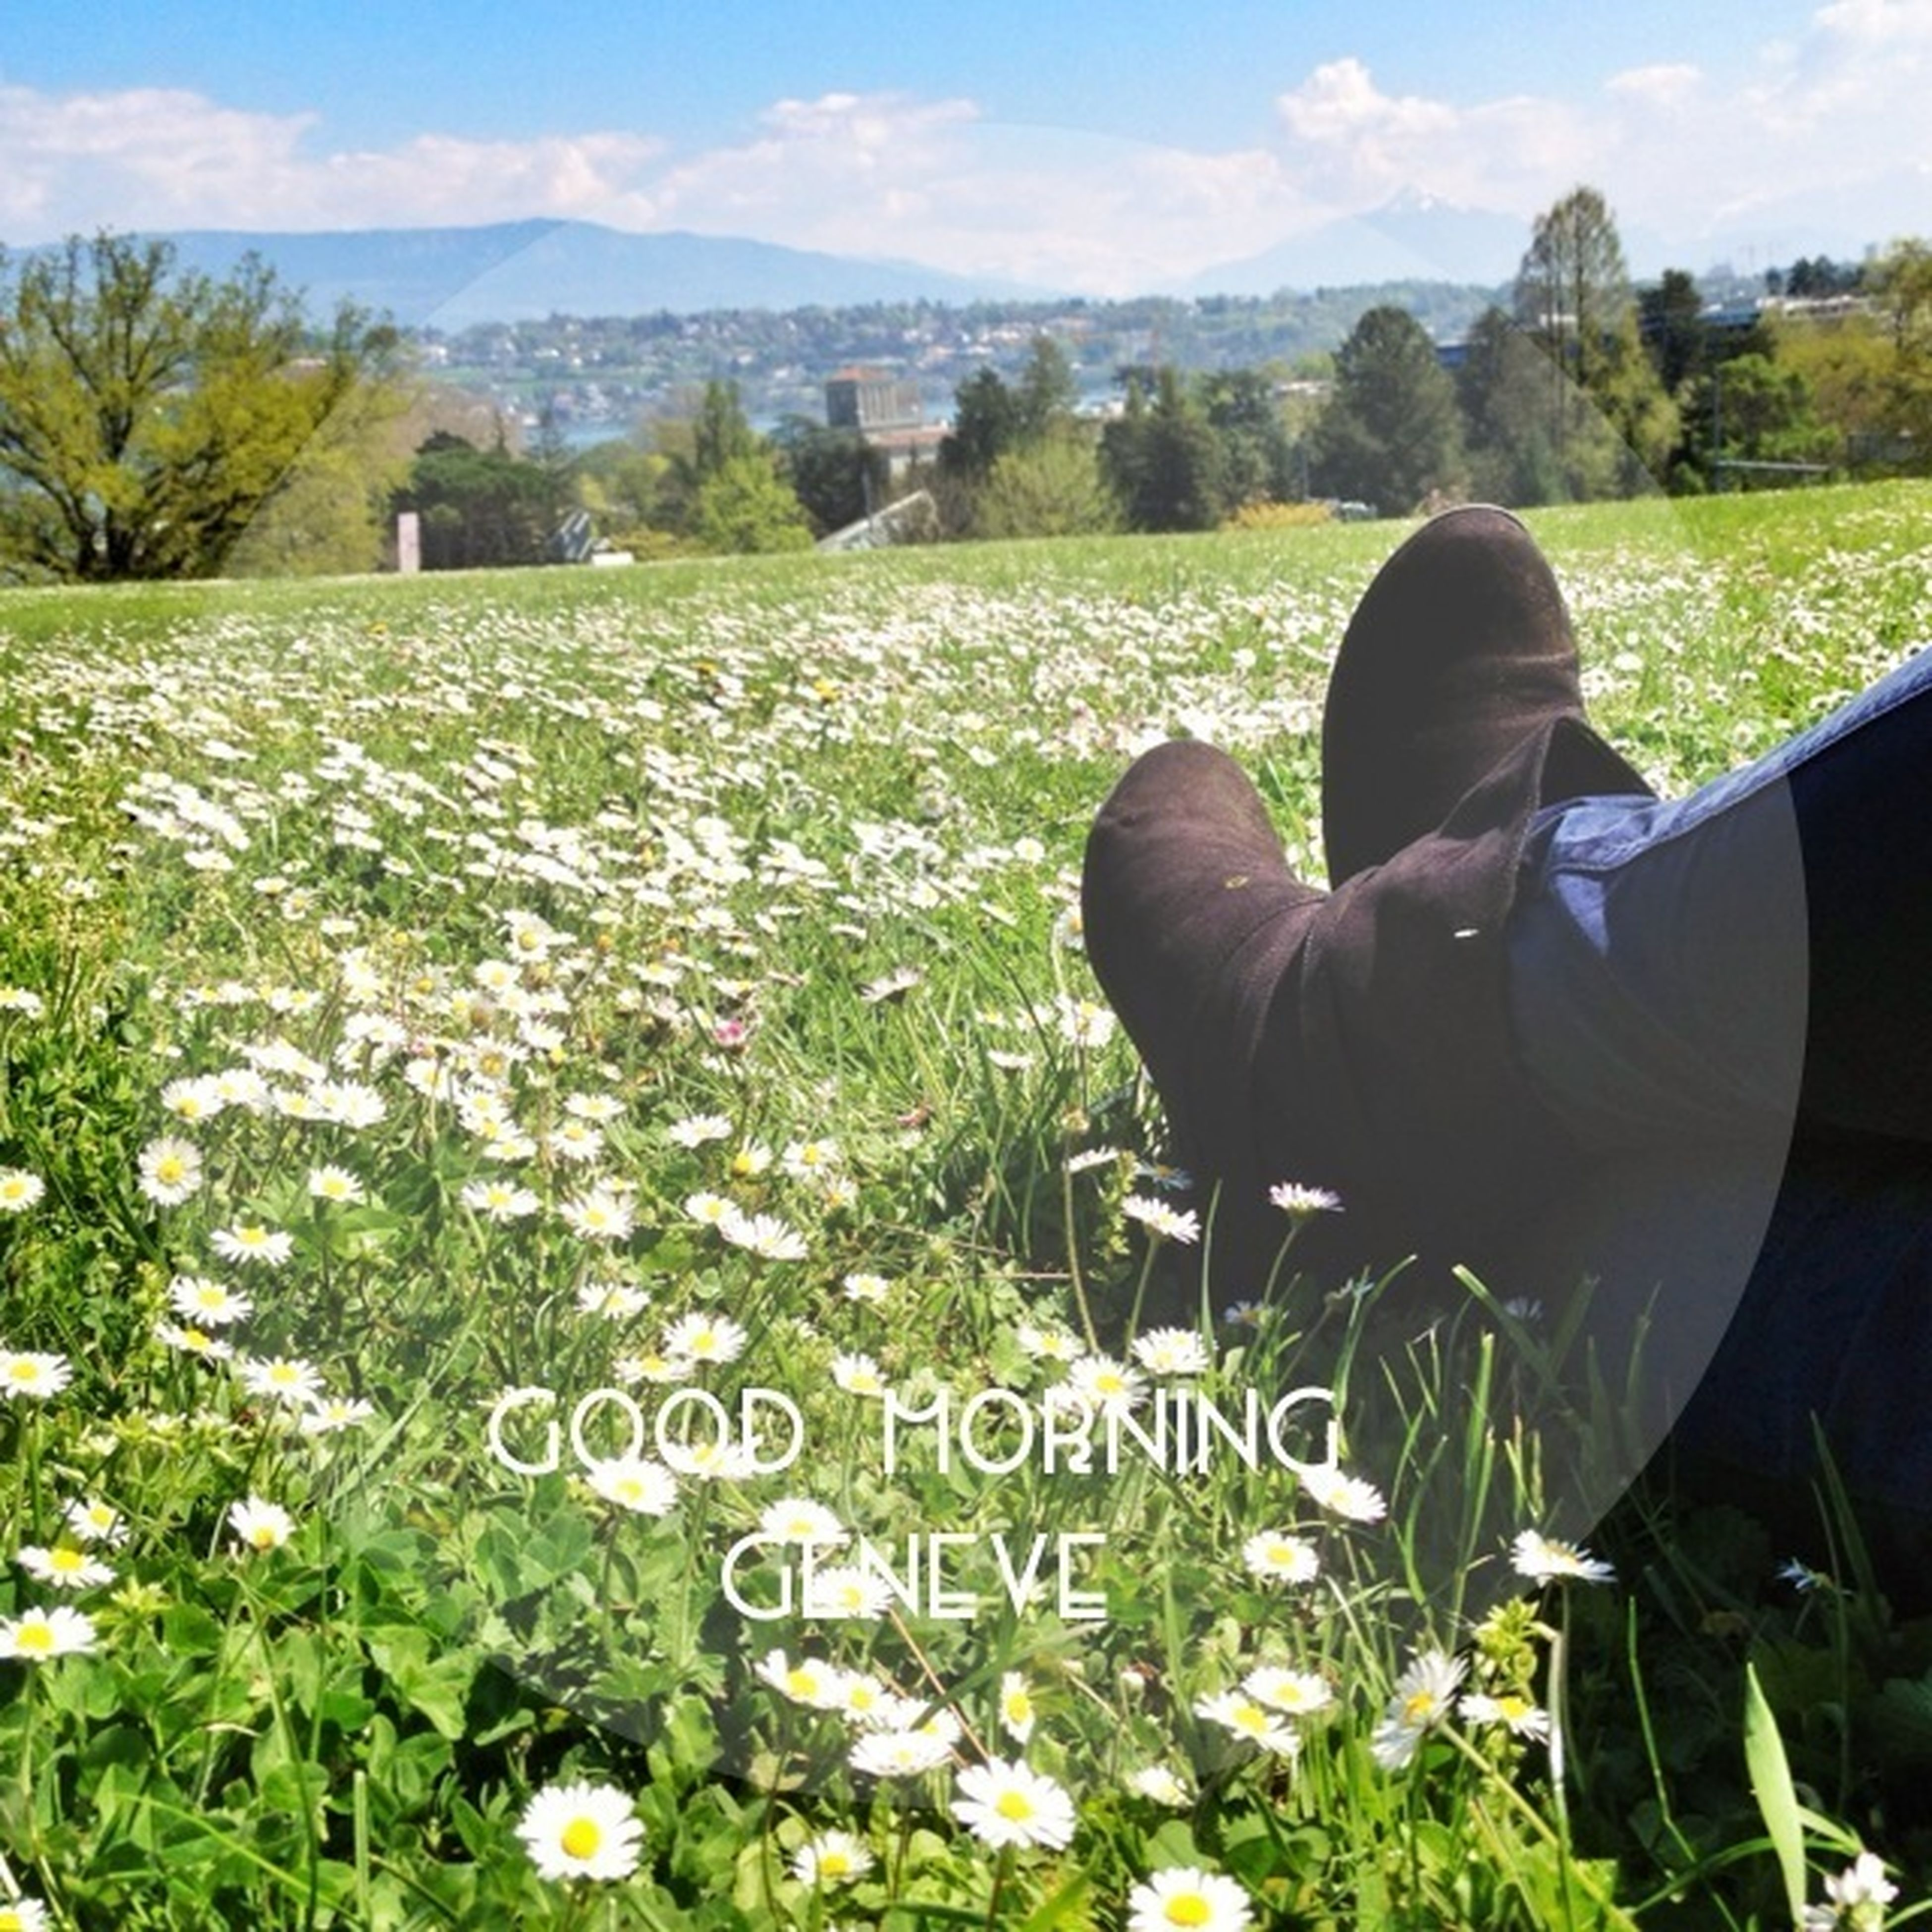 field, landscape, grass, beauty in nature, lifestyles, leisure activity, flower, mountain, nature, men, plant, tranquility, rural scene, tranquil scene, sky, growth, rear view, scenics